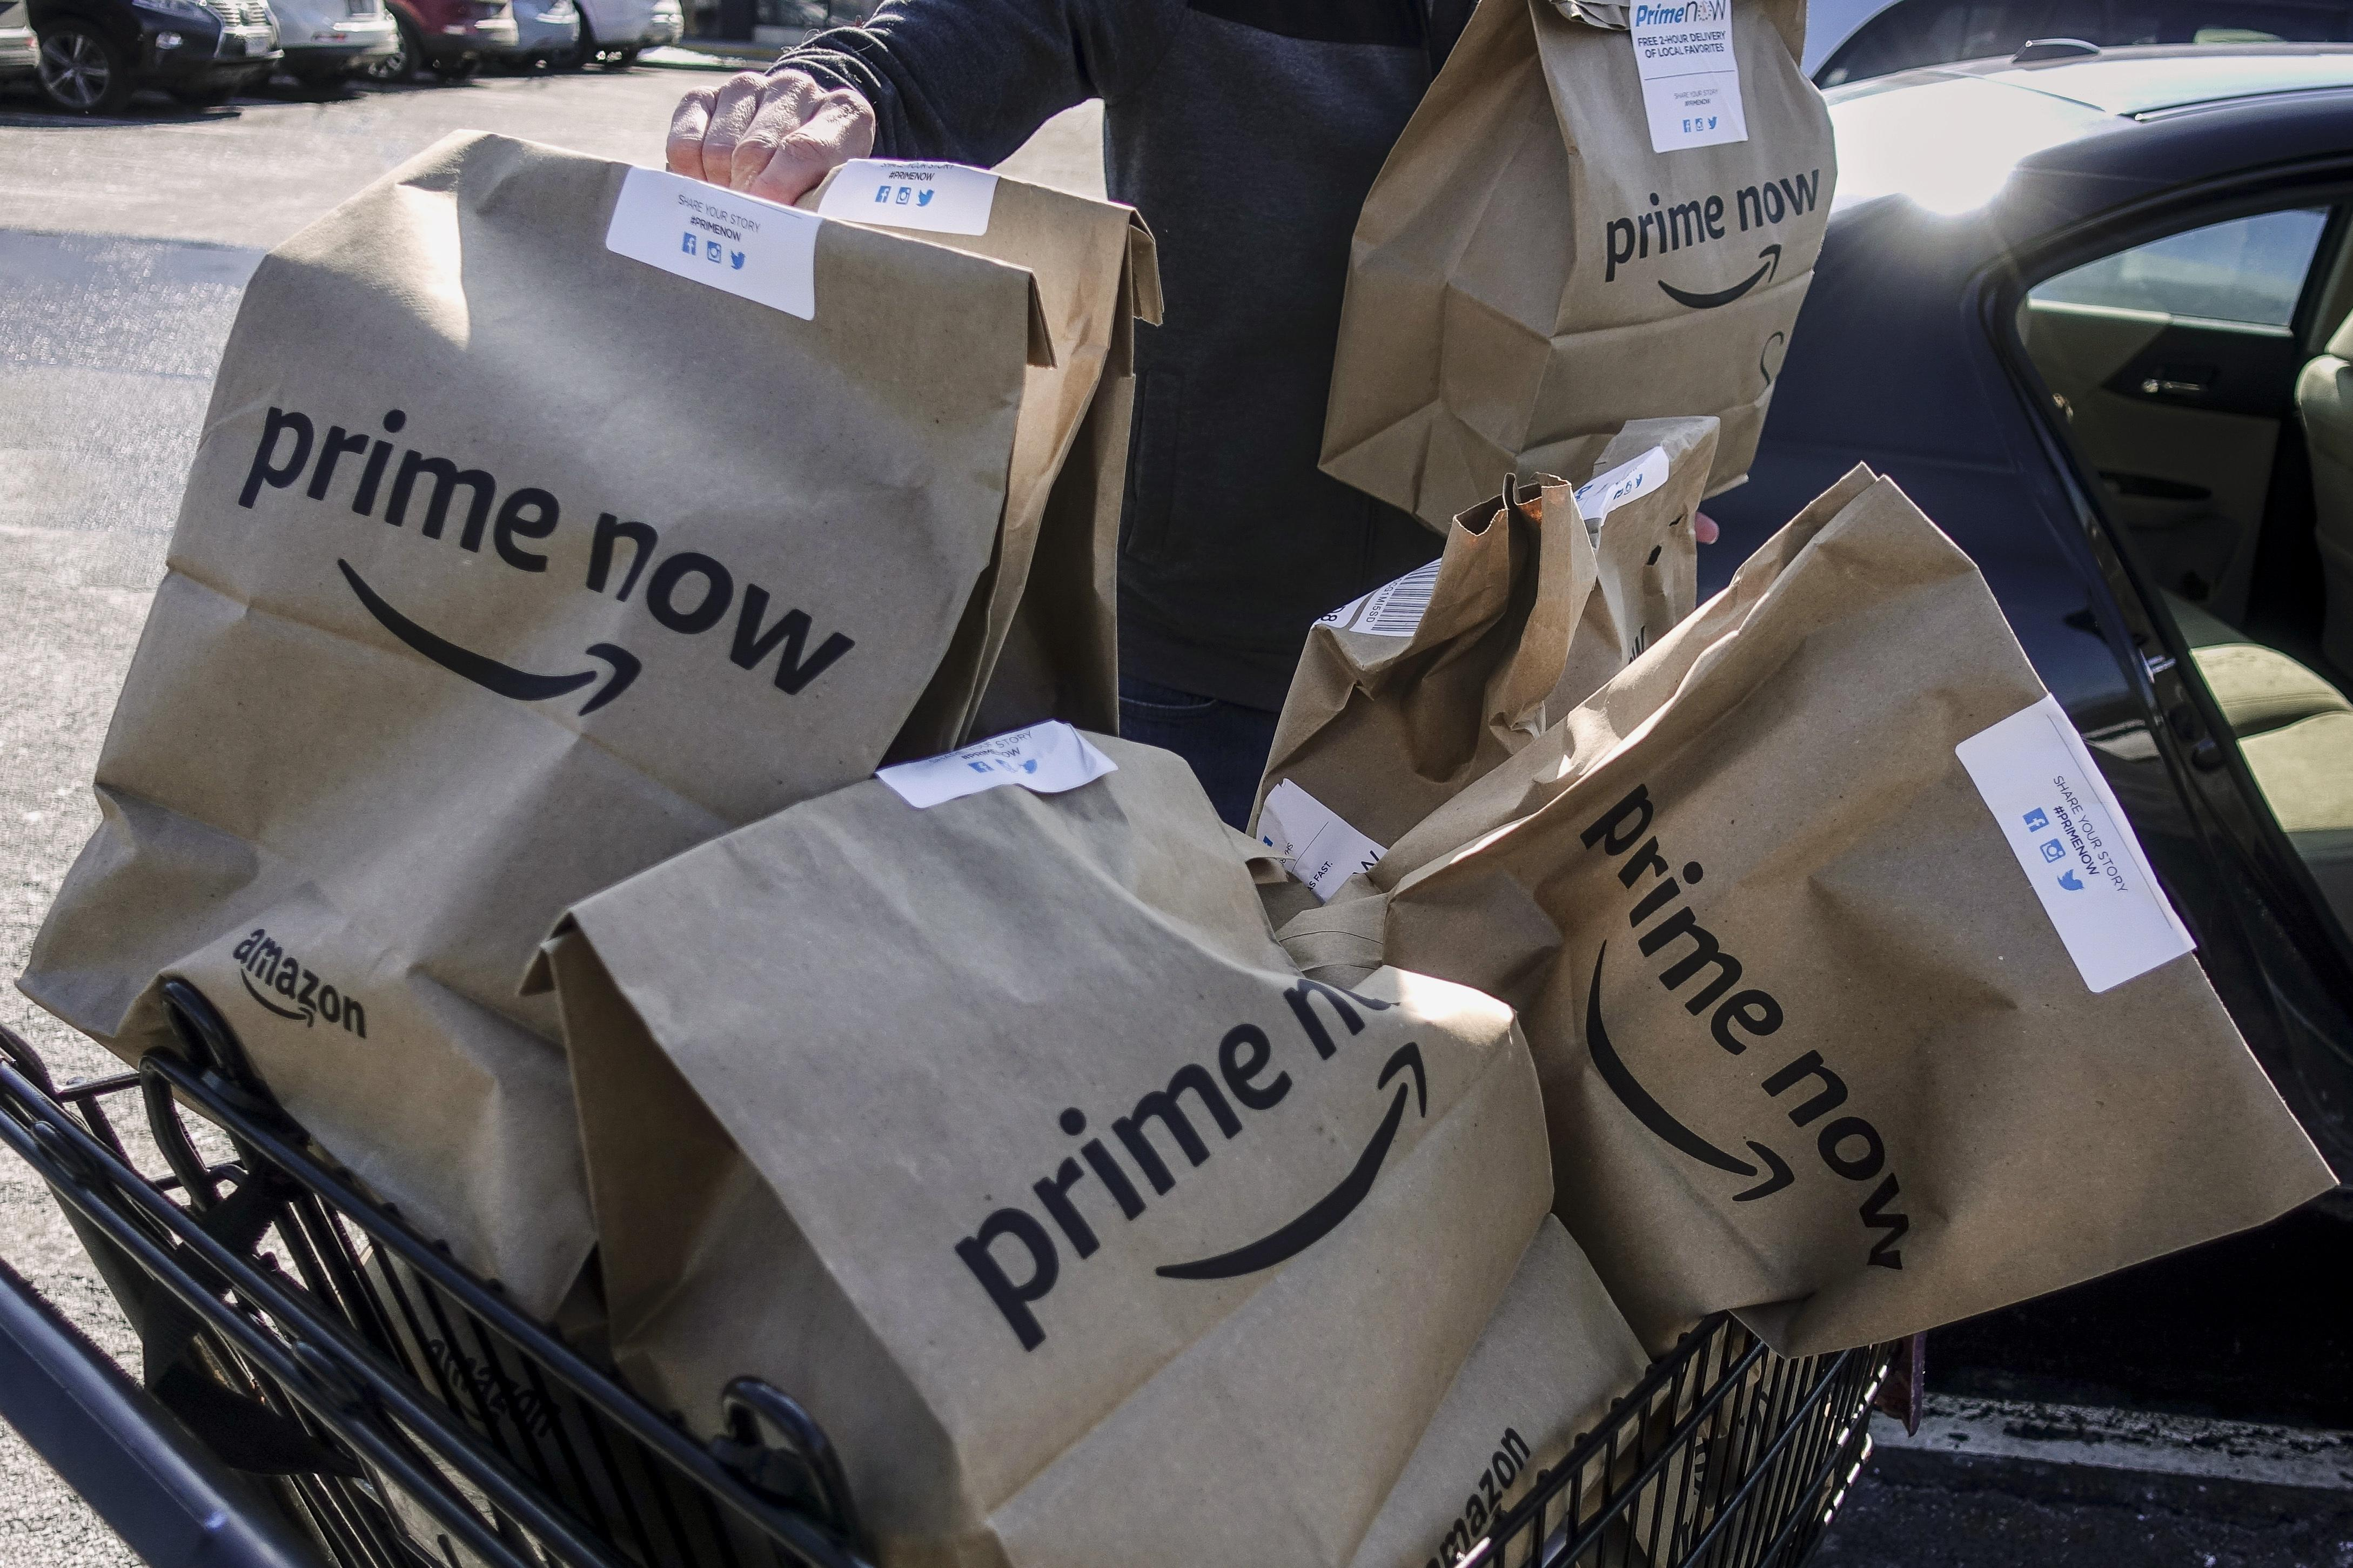 186cfa3b6bc Amazon Prime Now bags full of groceries are loaded for delivery by a  part-time